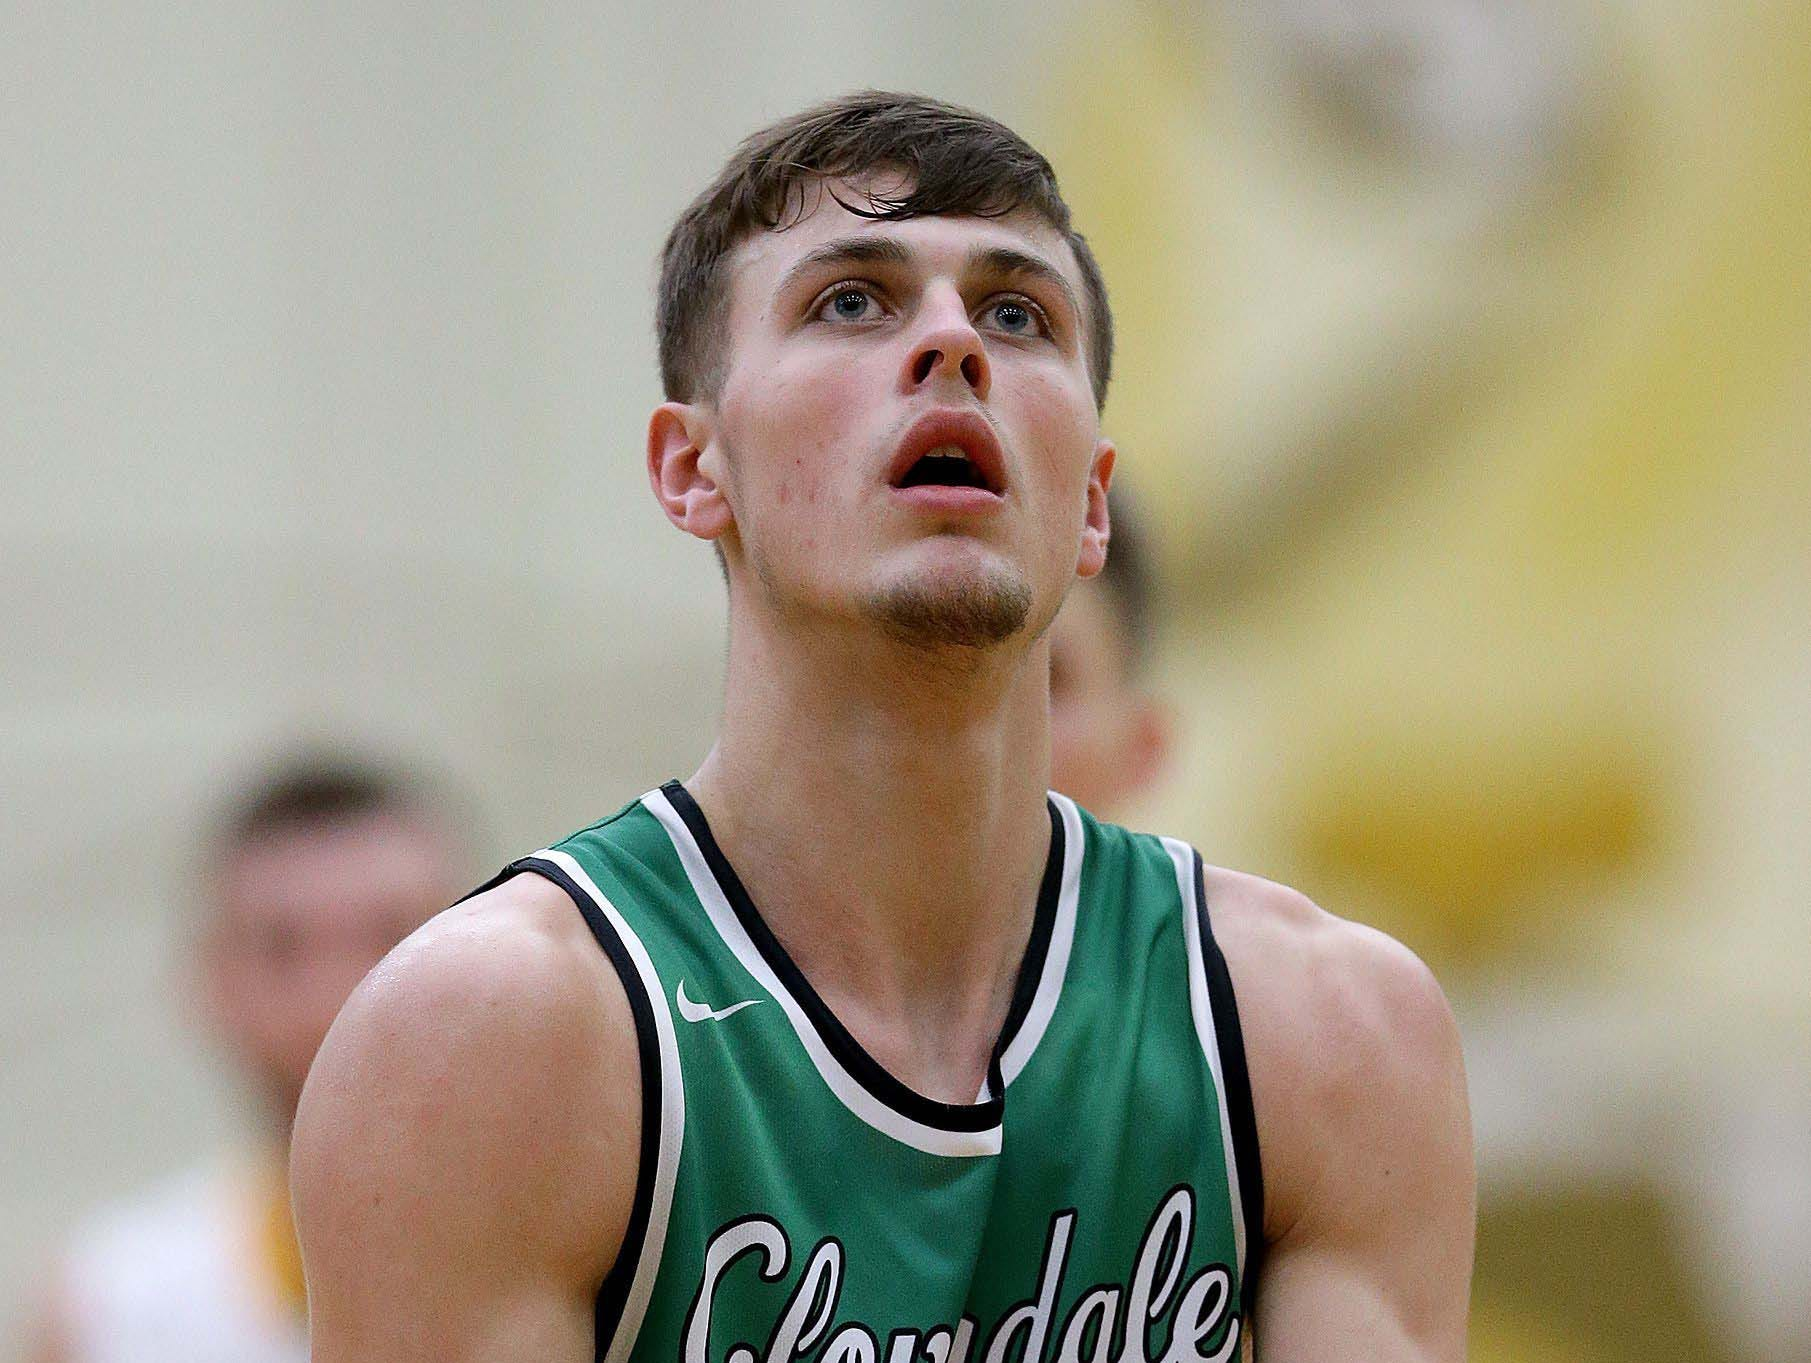 Cooper Neese of Cloverdale had an impressive high school scoring career with 2,496 when he left the Clovers in 2017.